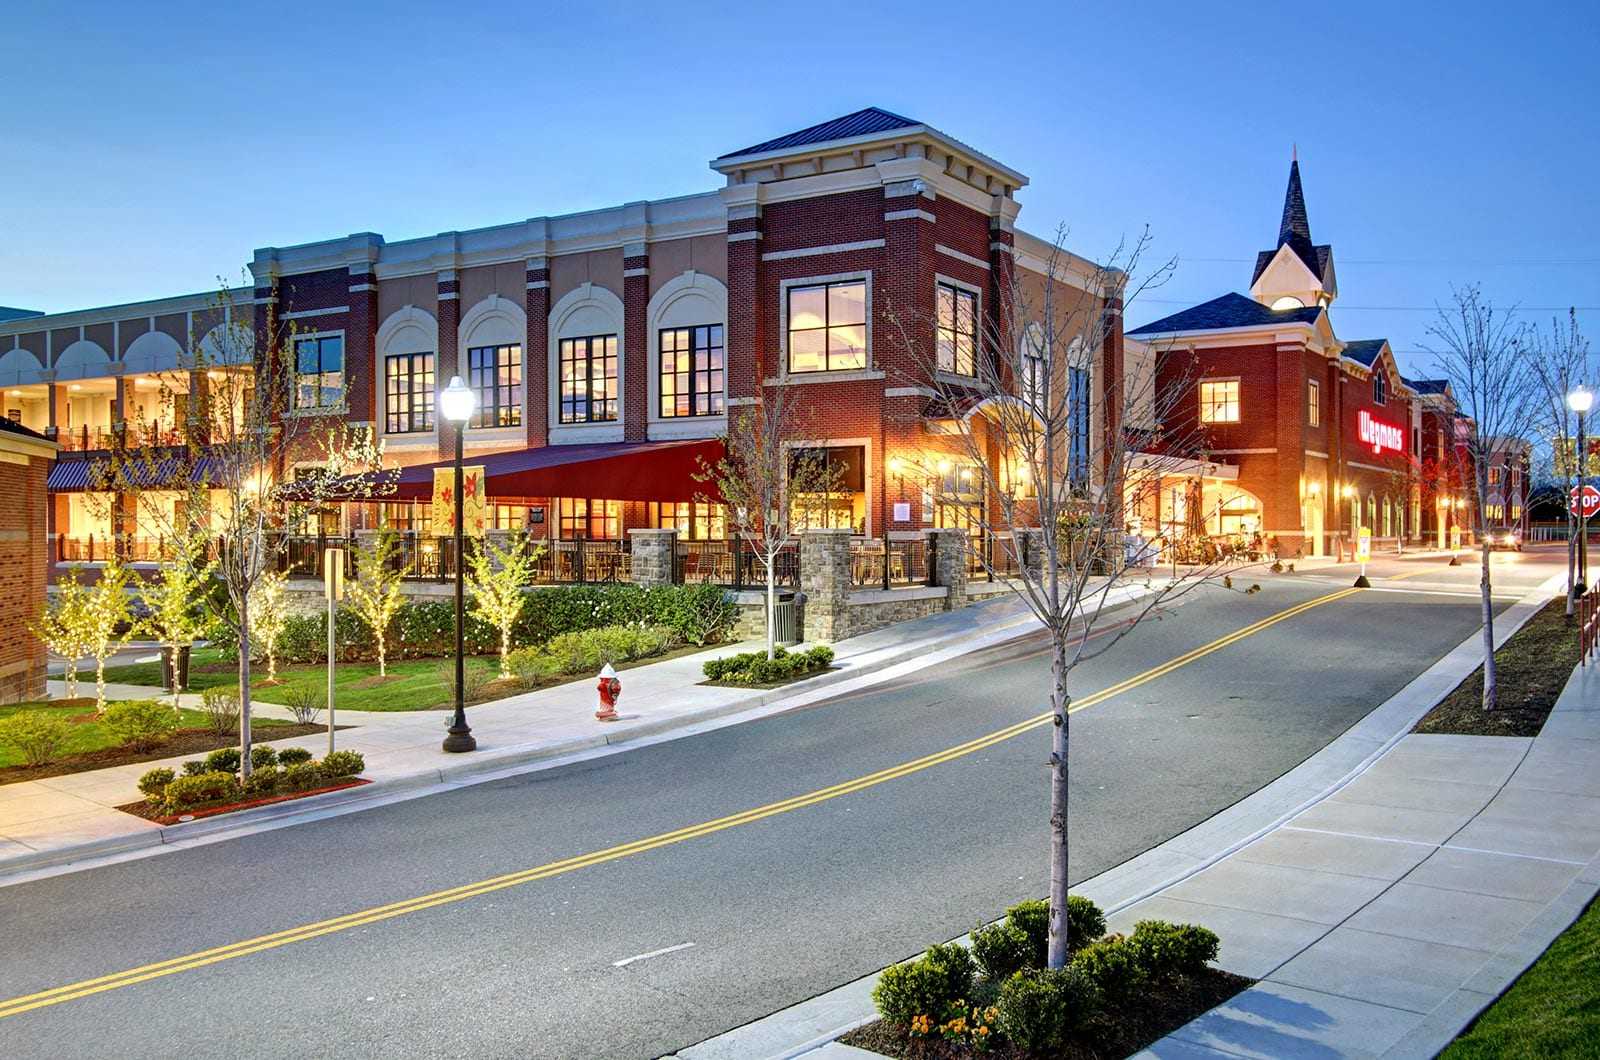 Commercial Real Estate Virtual Tour Provider   Commercial Real Estate Virtual Tour